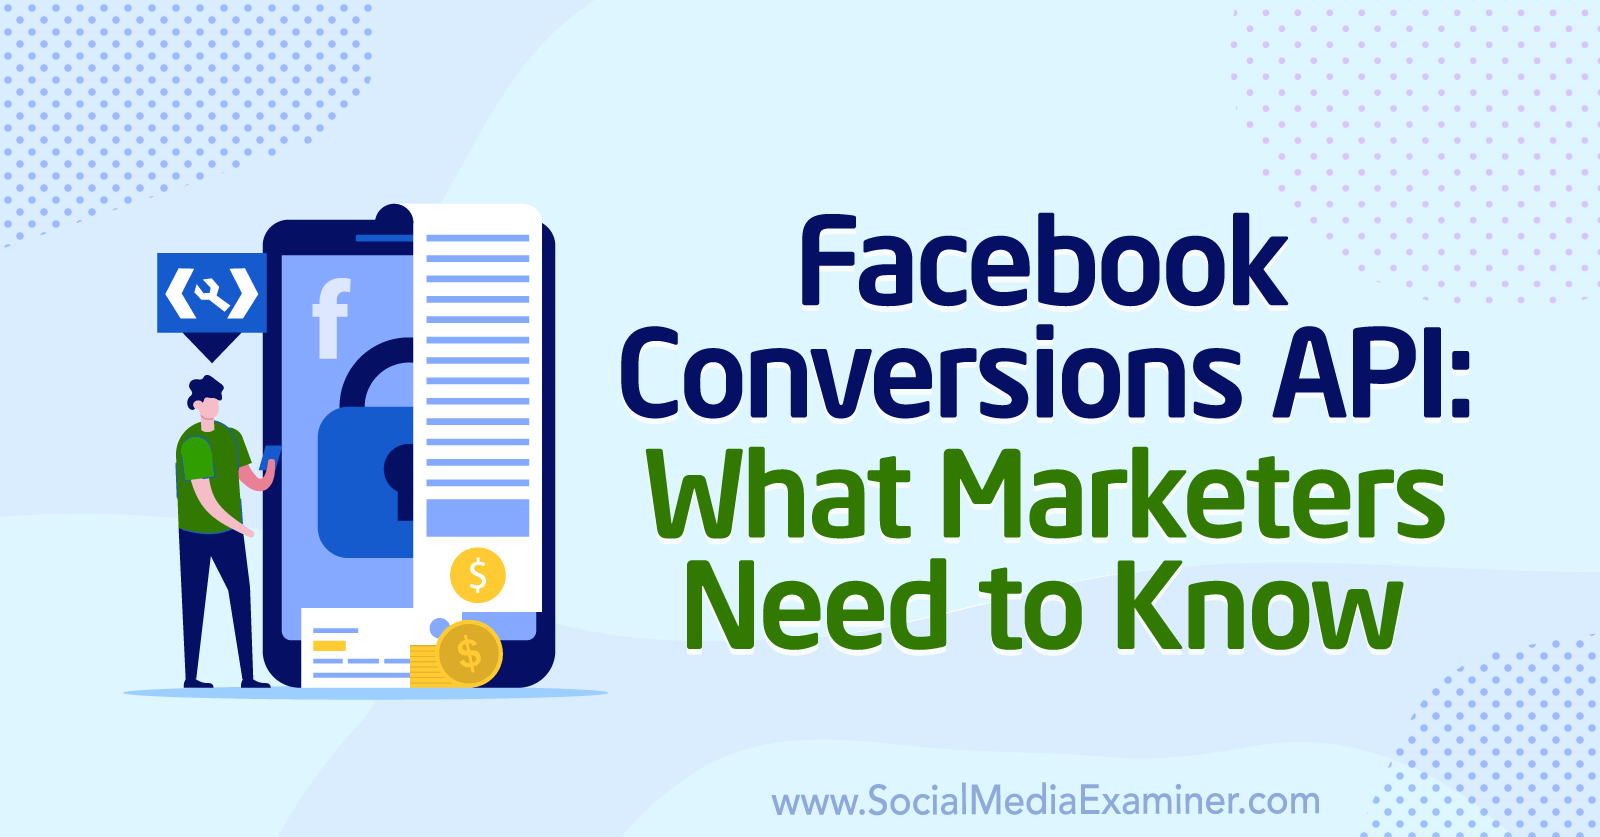 Facebook Conversions API: What Marketers Need to Know by Anne Popolizio on Social Media Examiner.